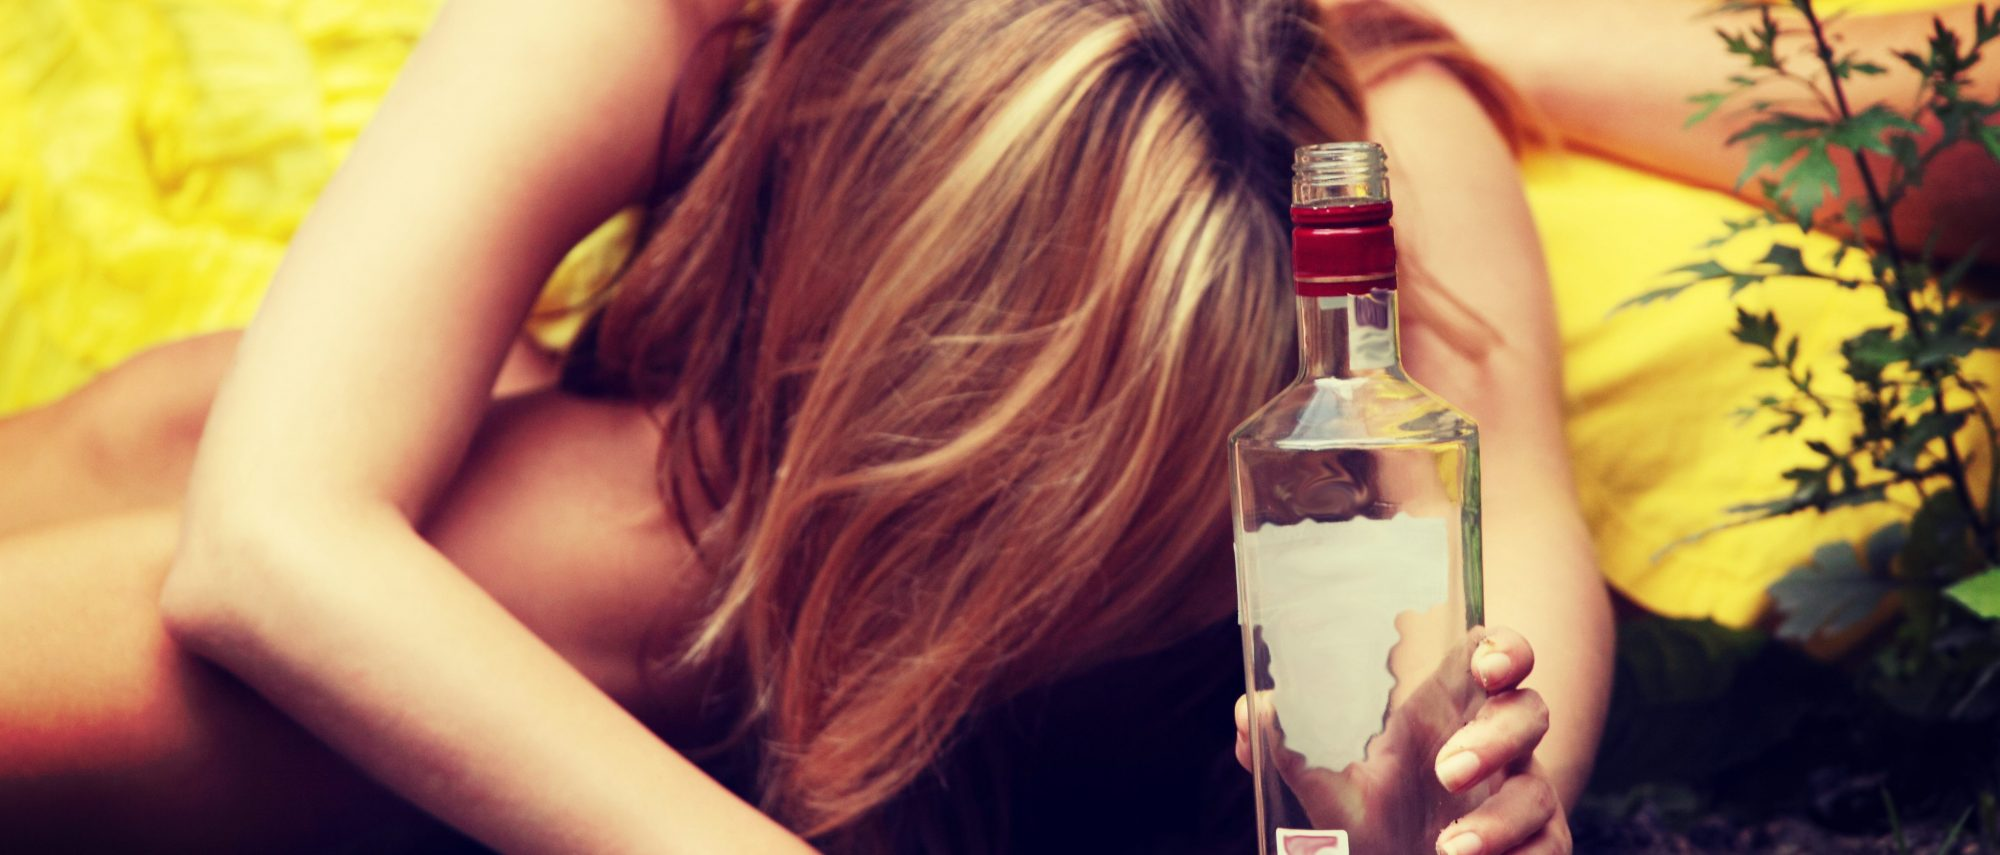 binge drinking is a women's health problem